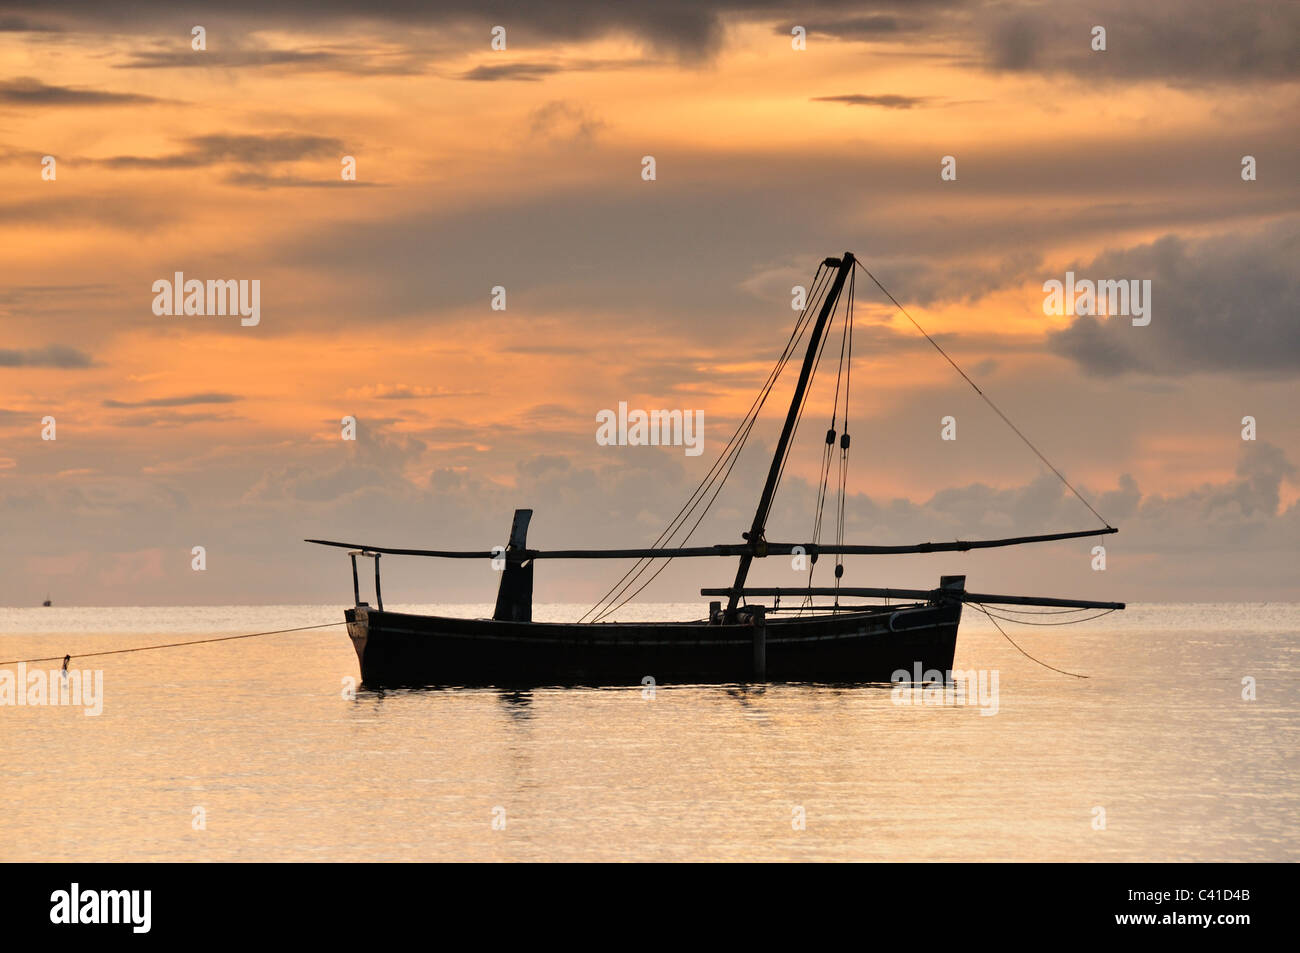 A Dhow in the Indian Ocean off the coast of Mafia Island, Tanzania at sunset - Stock Image